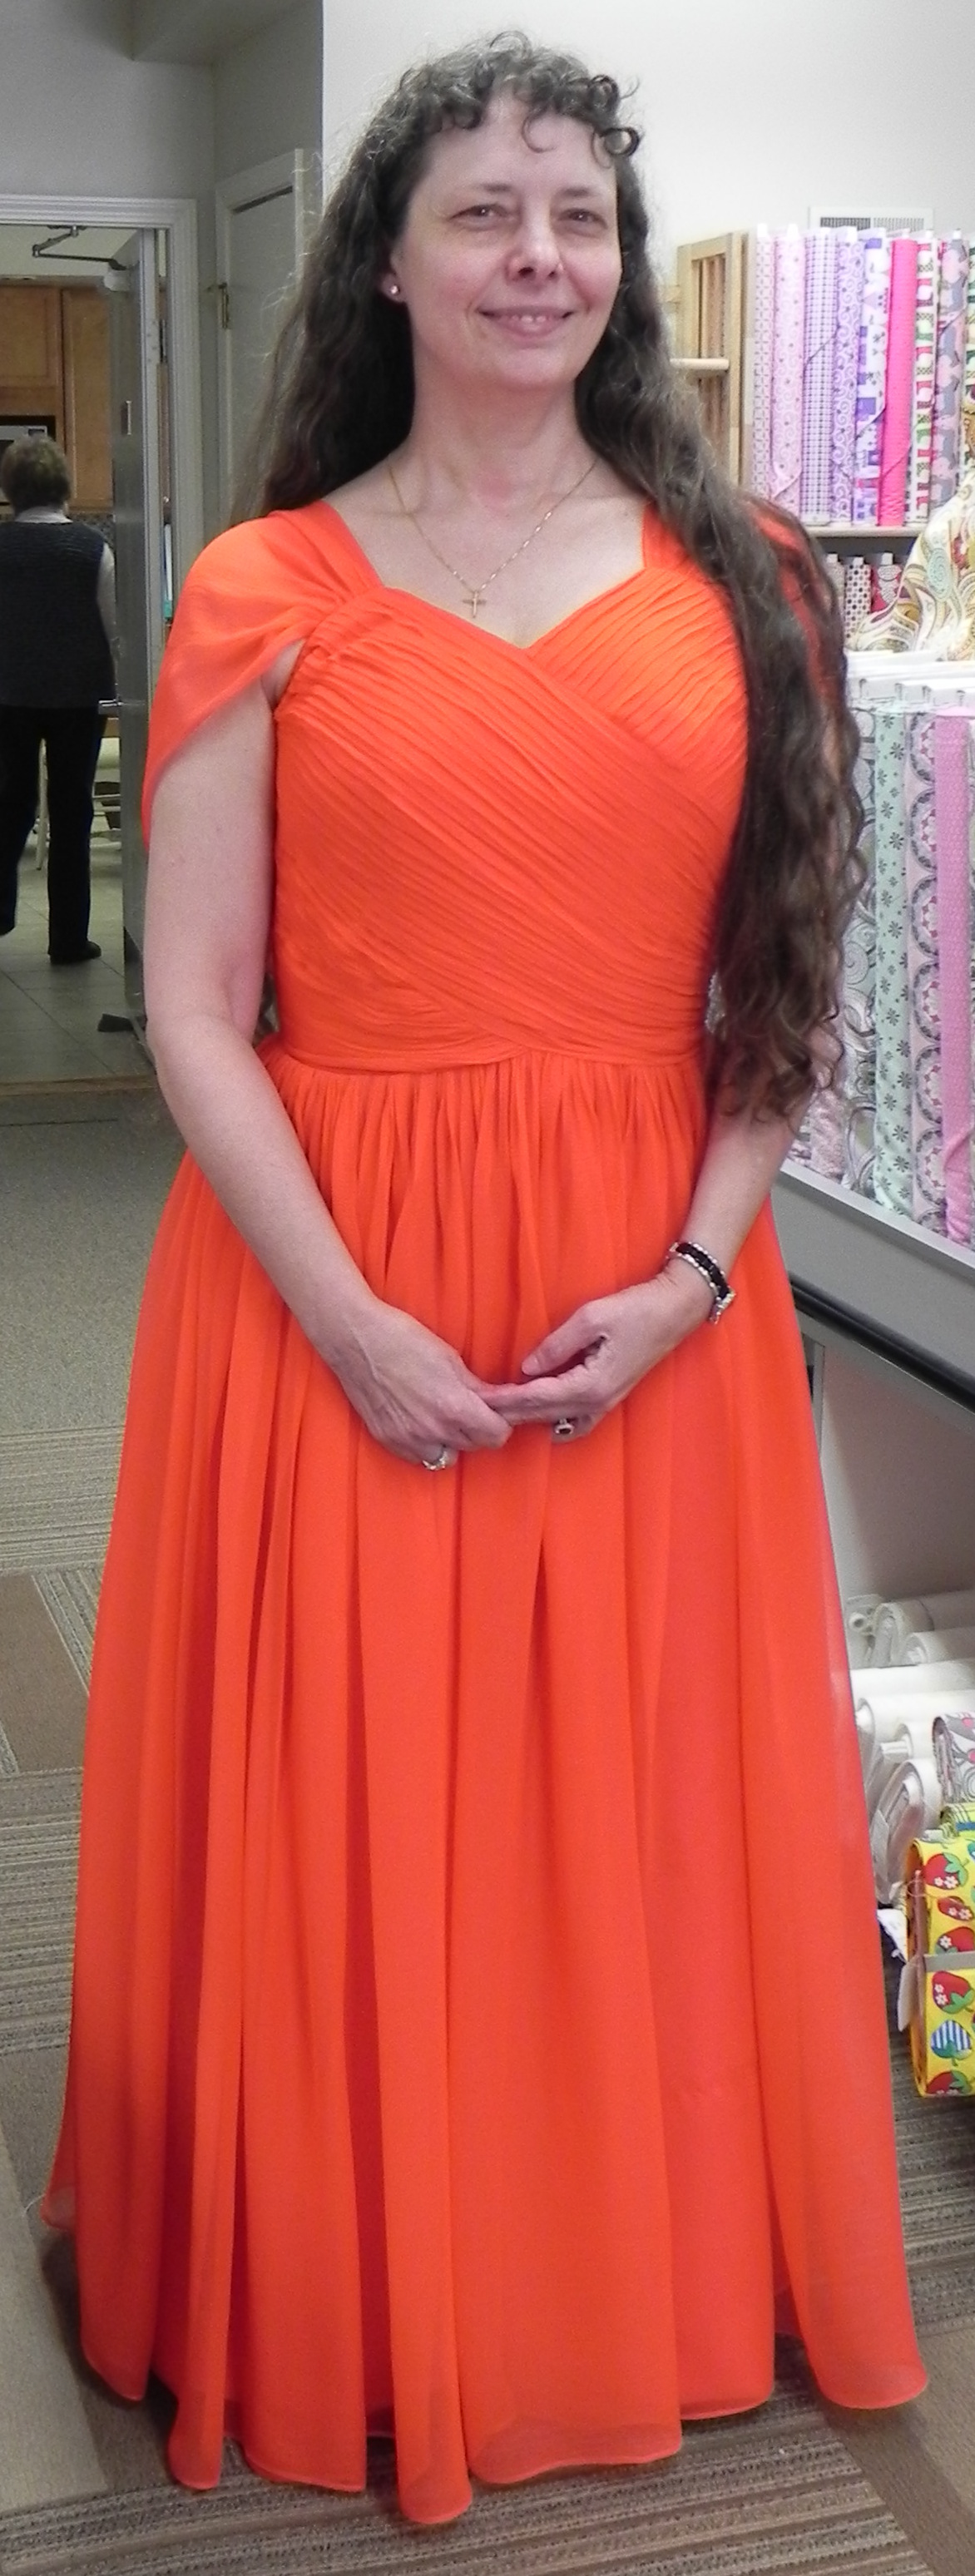 Picture of Store Owner in Orange Dress